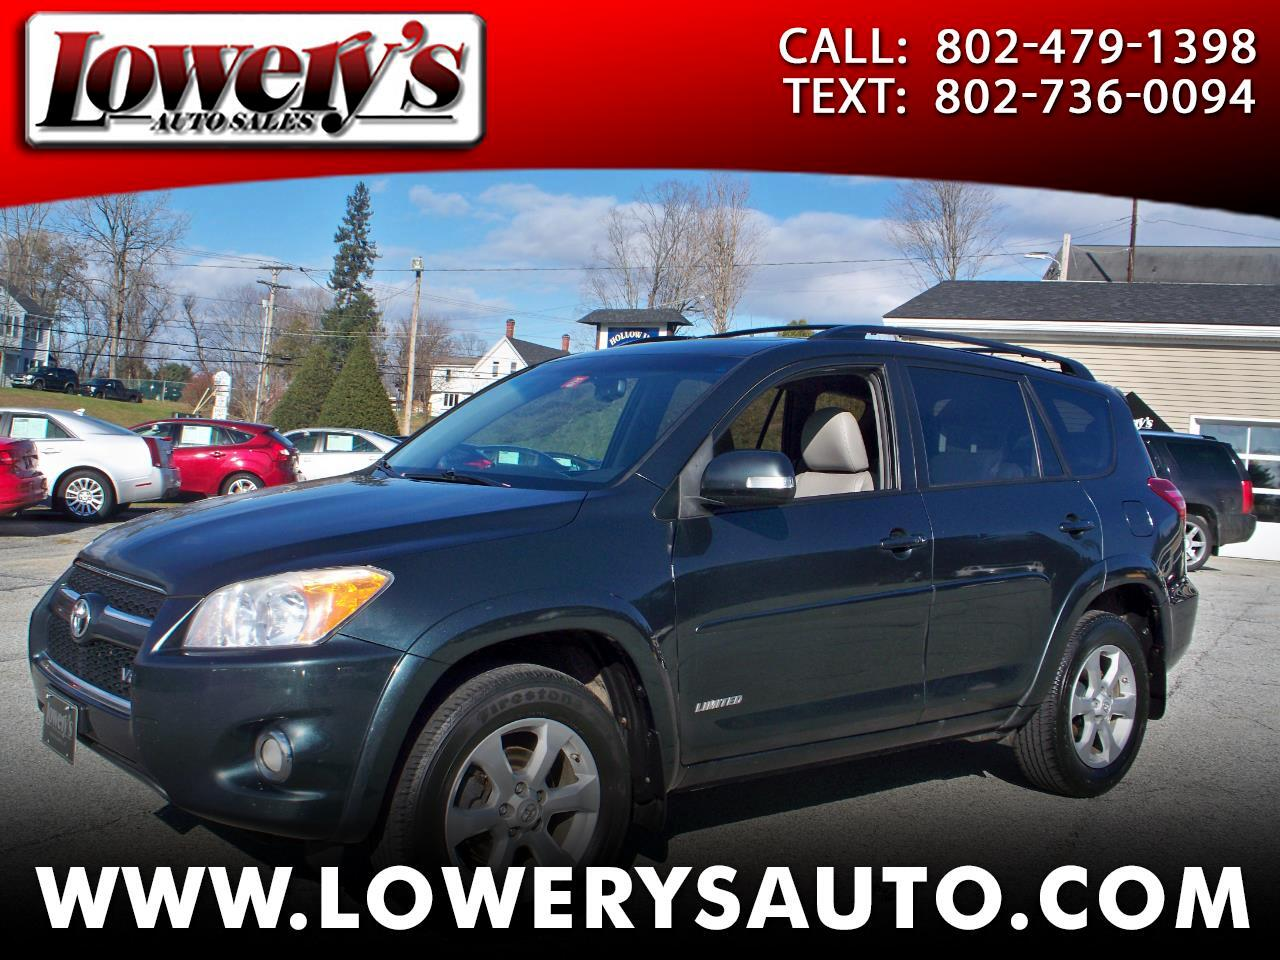 2010 Toyota RAV4 4WD 4dr V6 5-Spd AT Ltd (Natl)